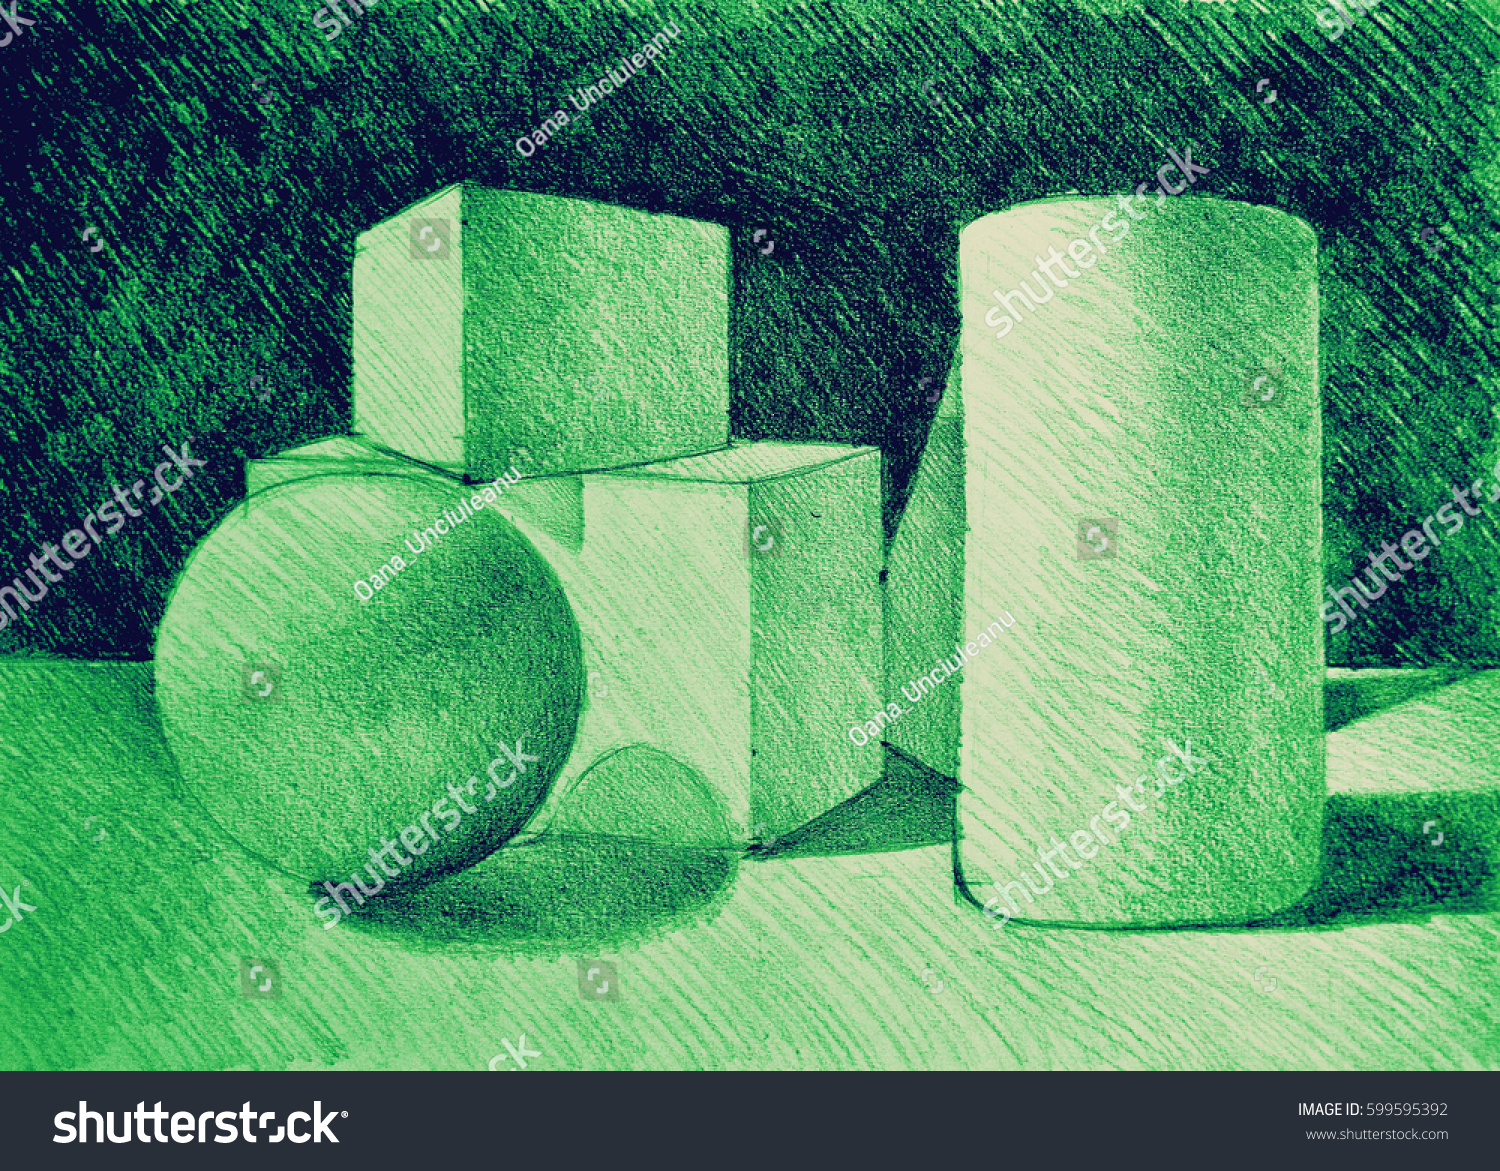 Still life drawing simple geometric volumes stock illustration